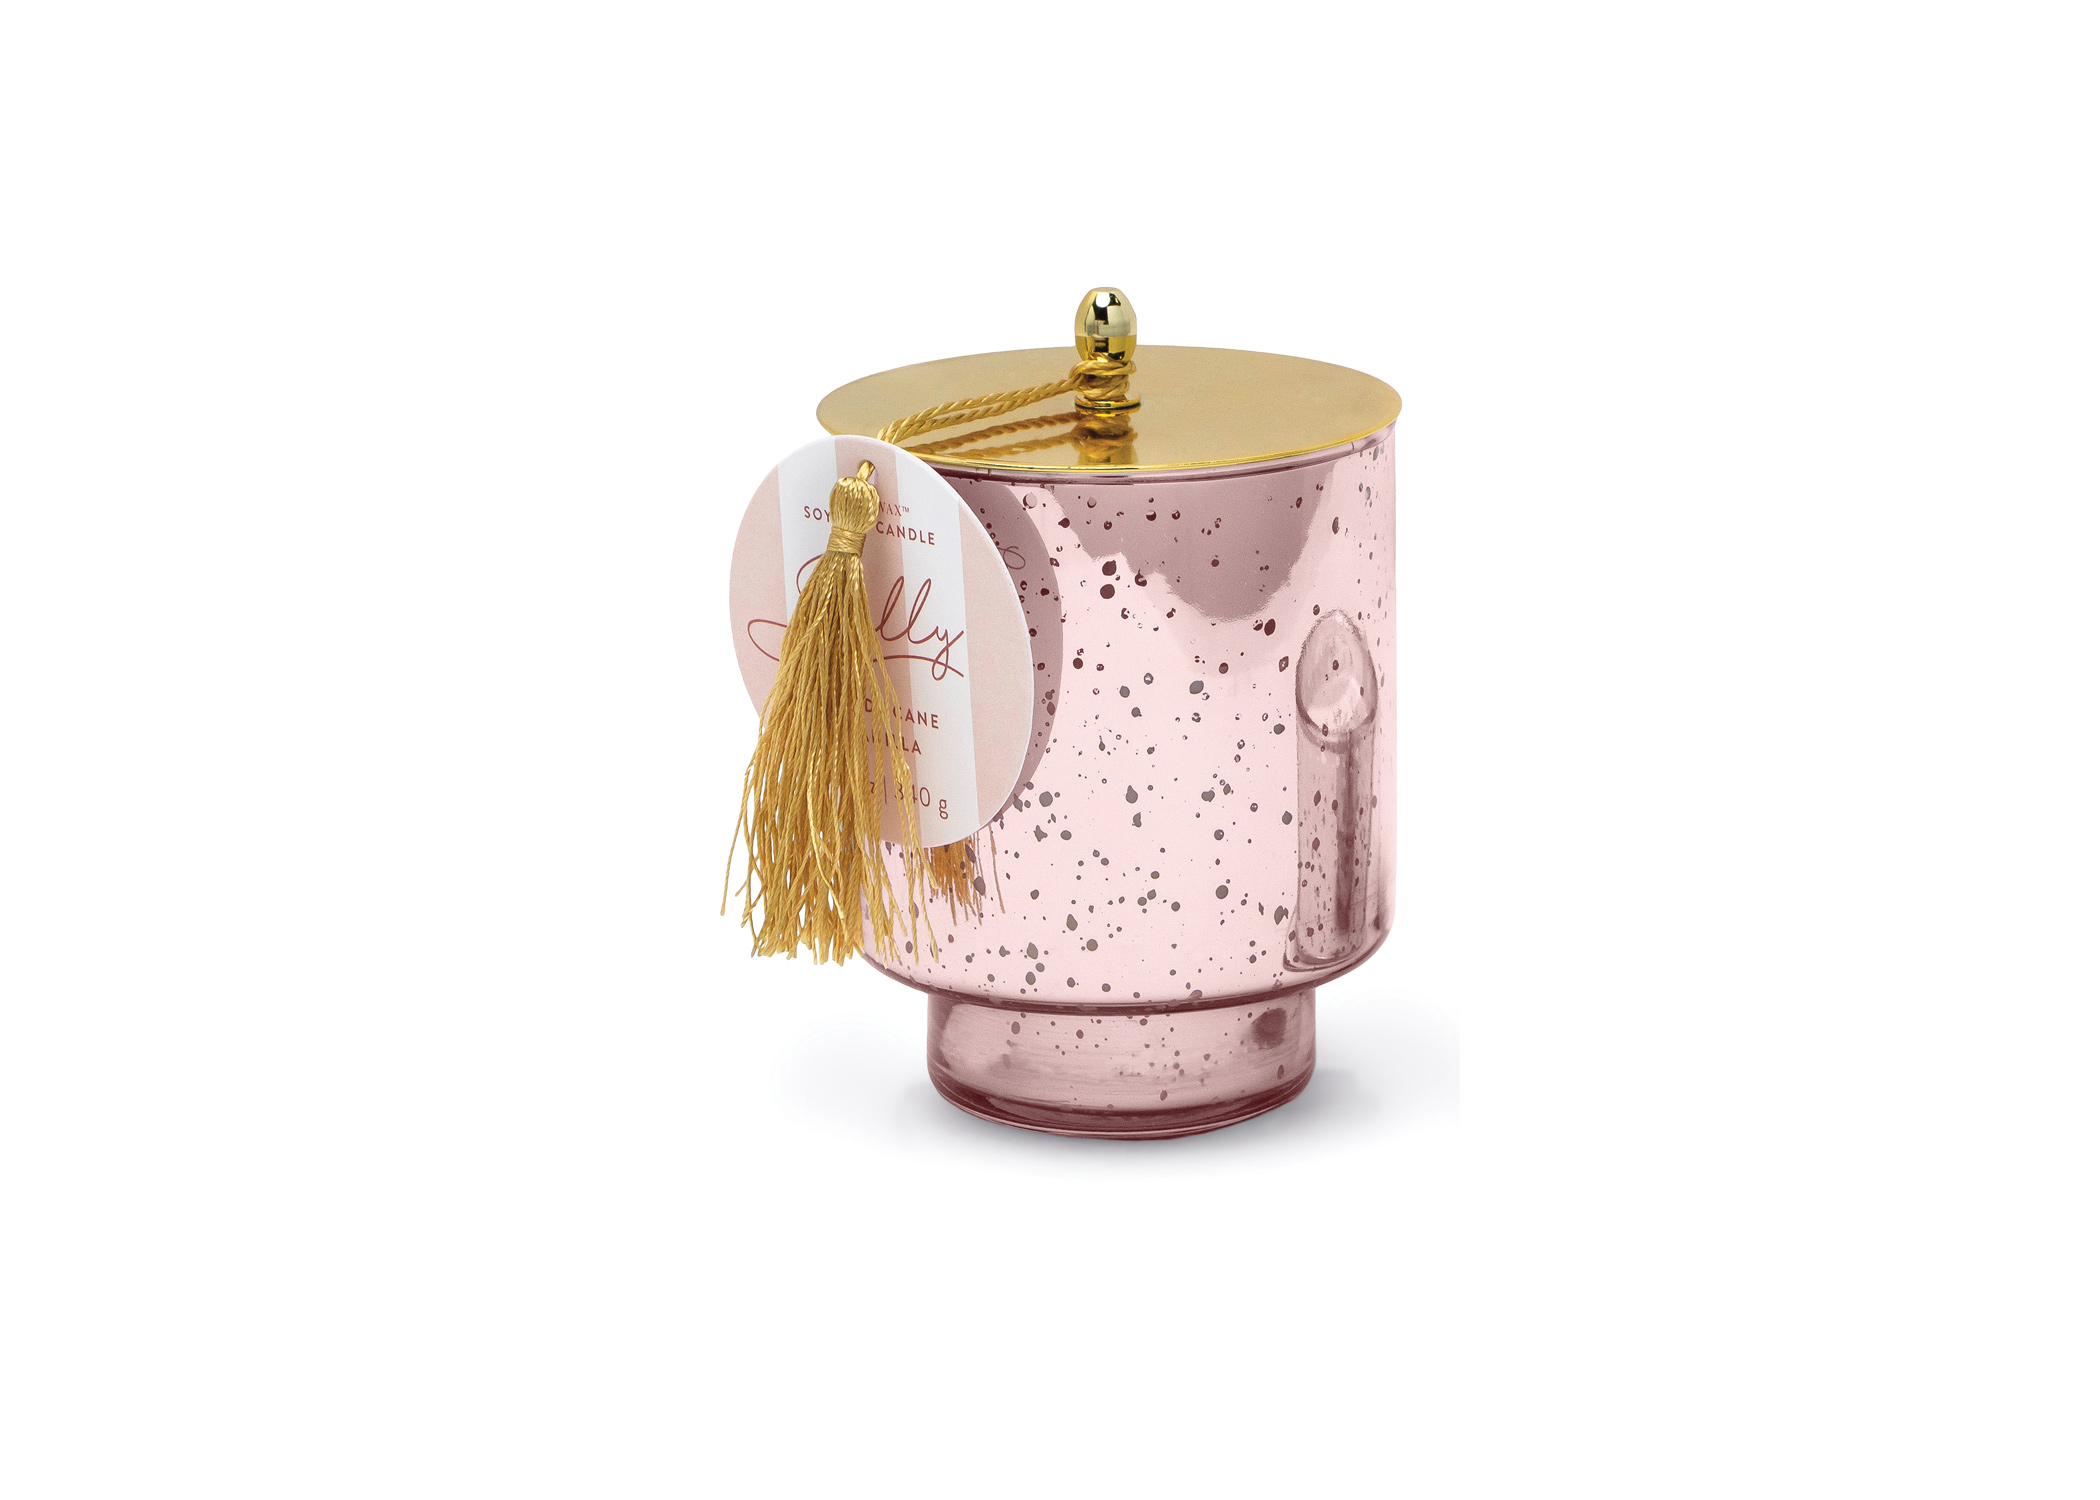 Candy Cane Vanilla - Paddywax - Holiday Tinsel - Soy Candle - 12oz